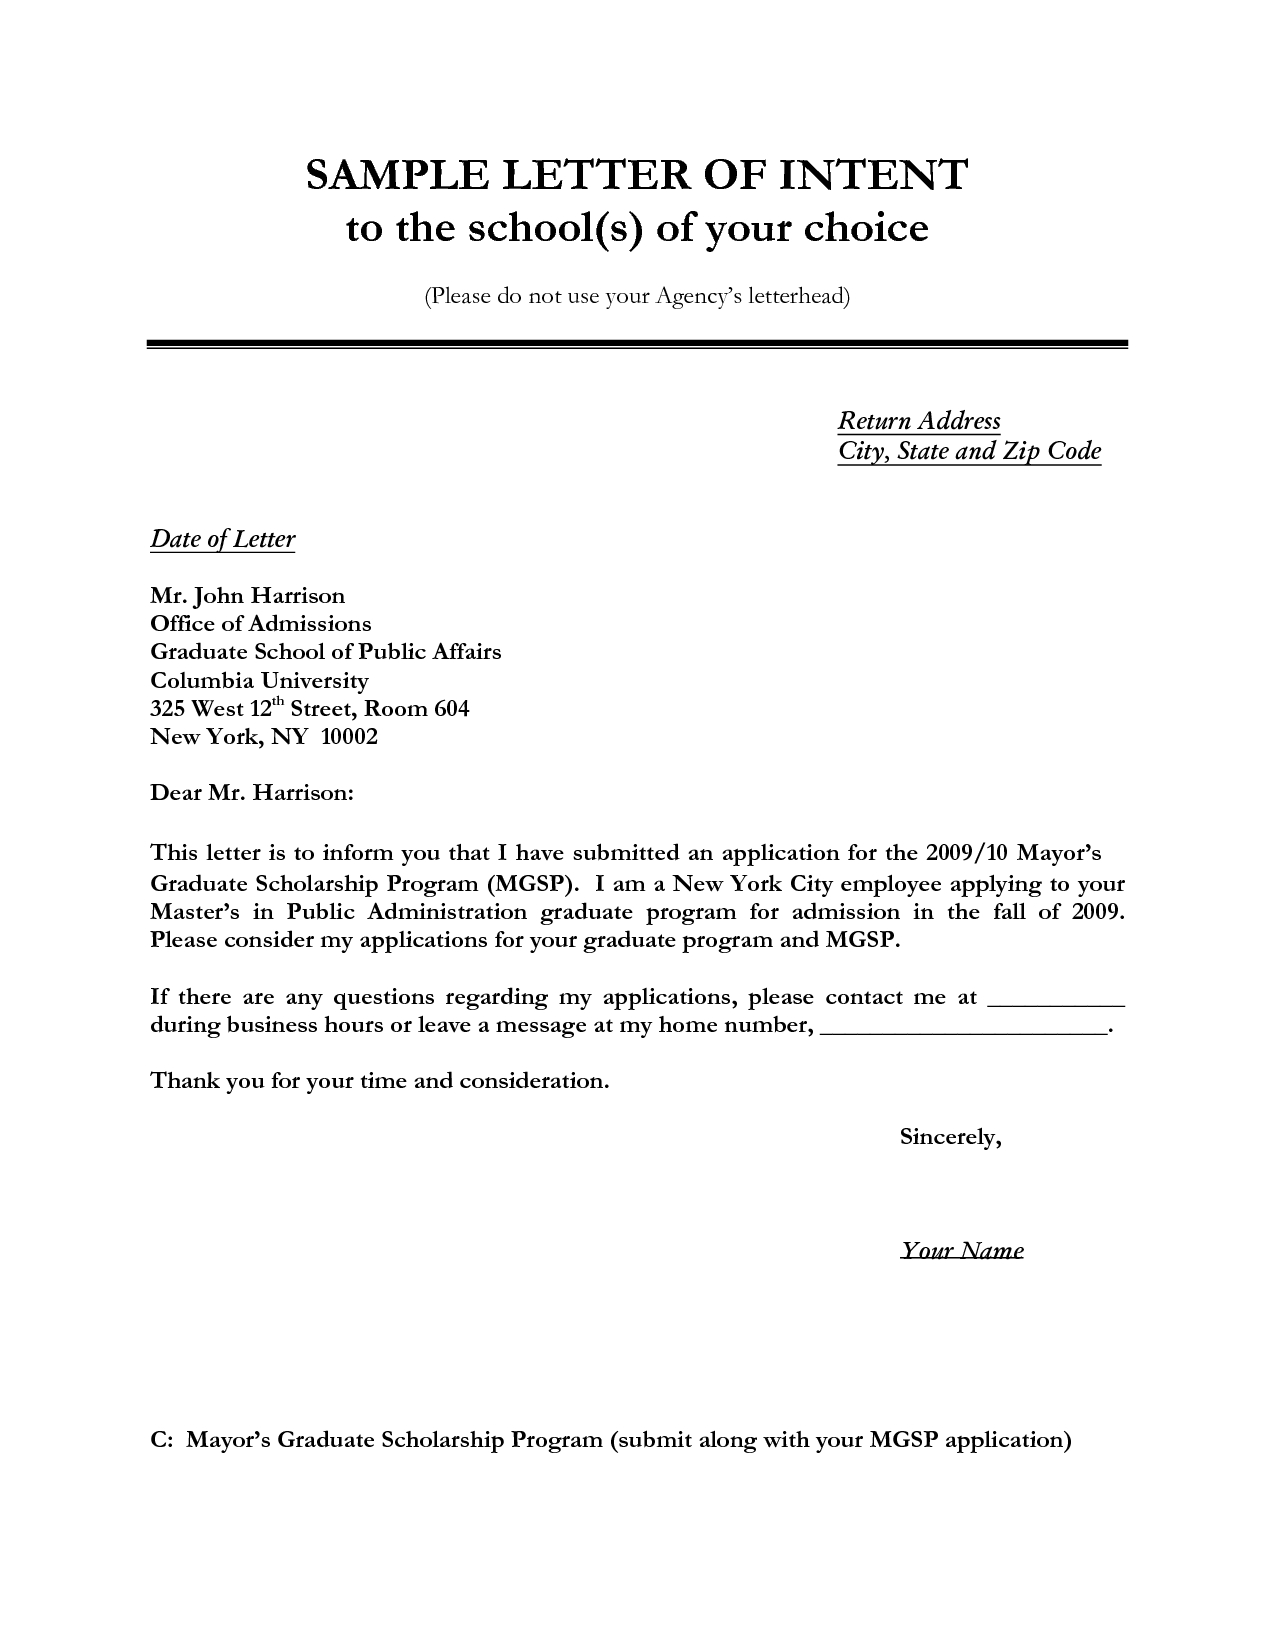 Free Business Letter format Template - Letter Of Intent Sample